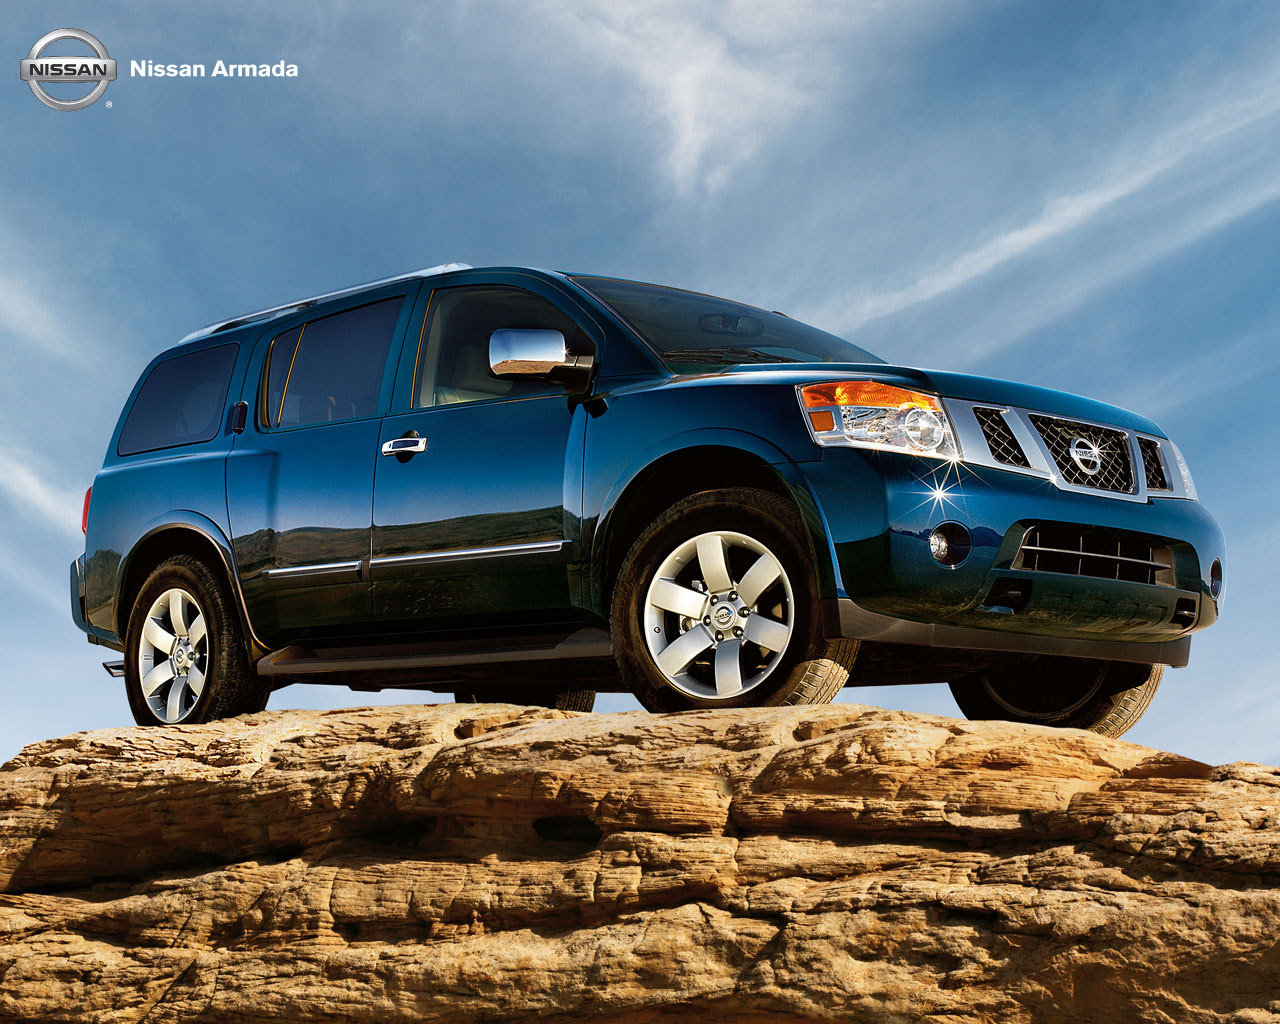 2010 nissan armada picture 313825 car review top speed. Black Bedroom Furniture Sets. Home Design Ideas